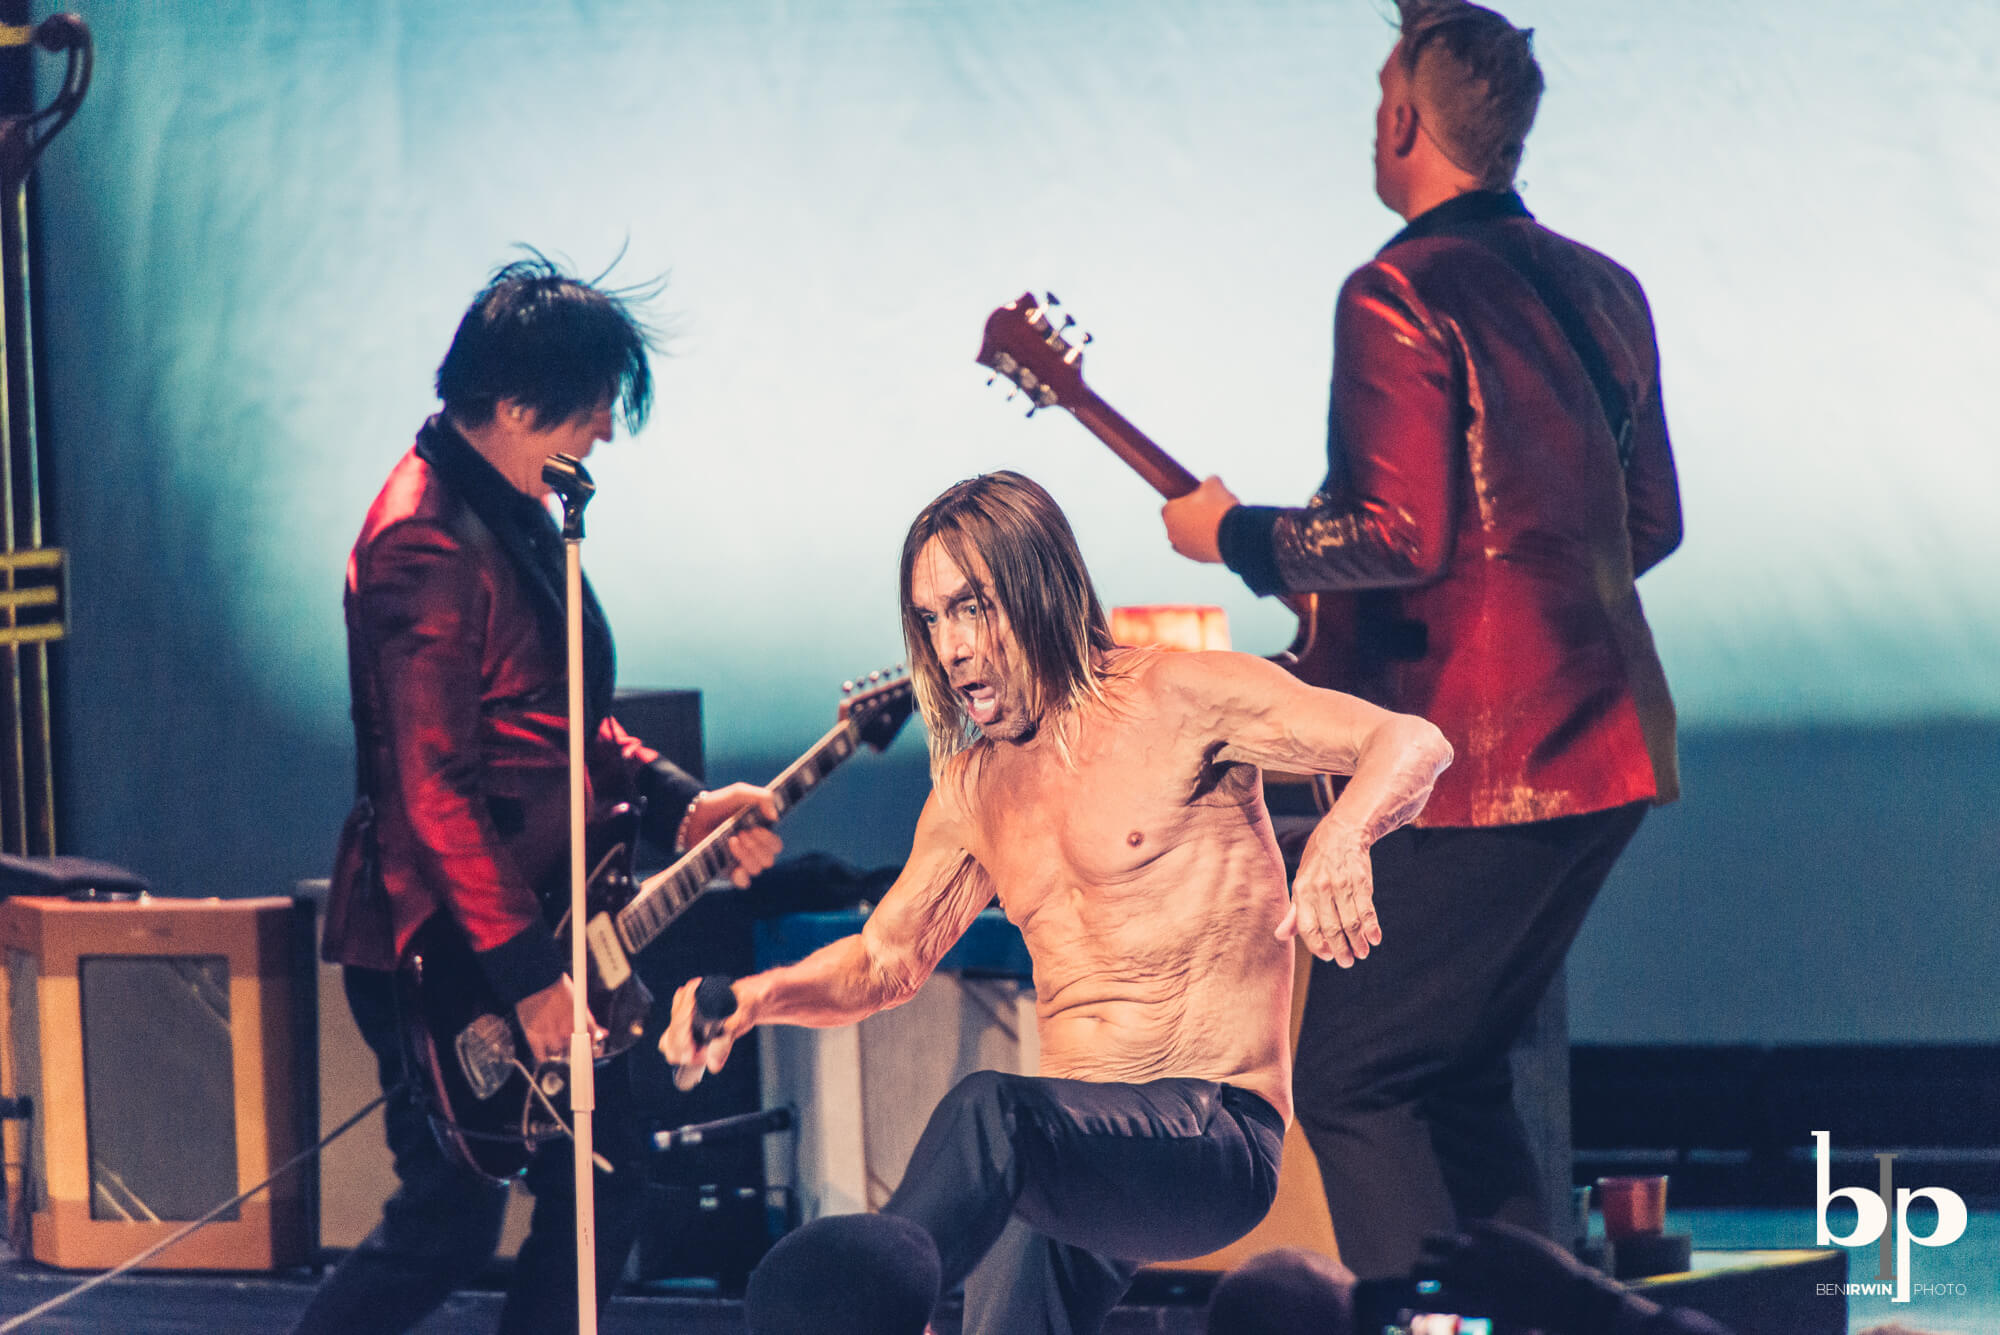 Iggy Pop - Josh Homme - bill callahan - Greek LA - 4-28-16_BI5343